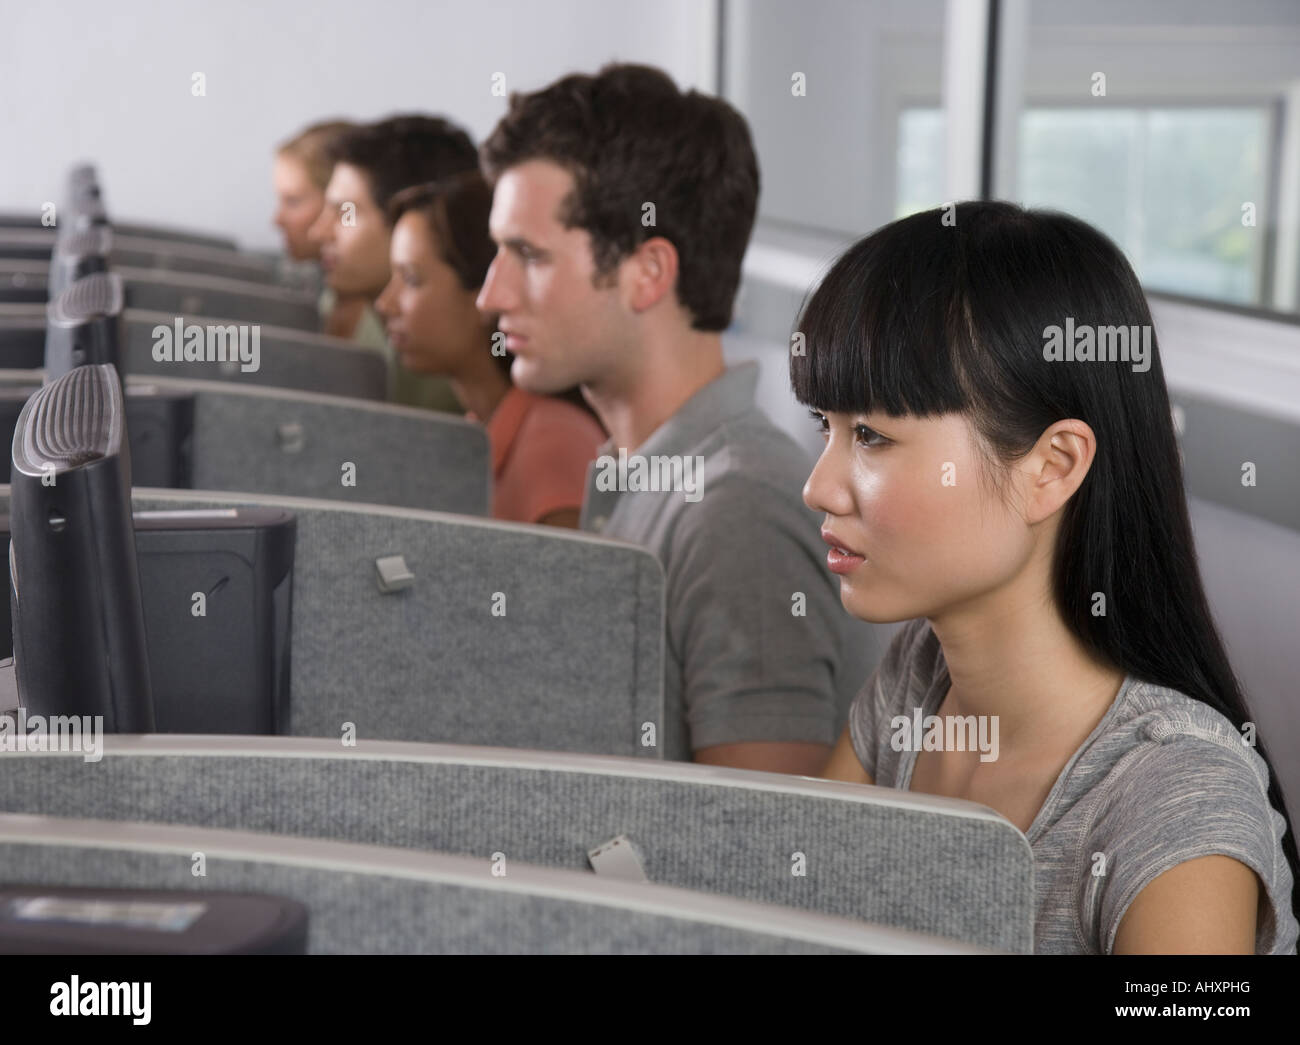 College students wearing headsets in computer lab - Stock Image